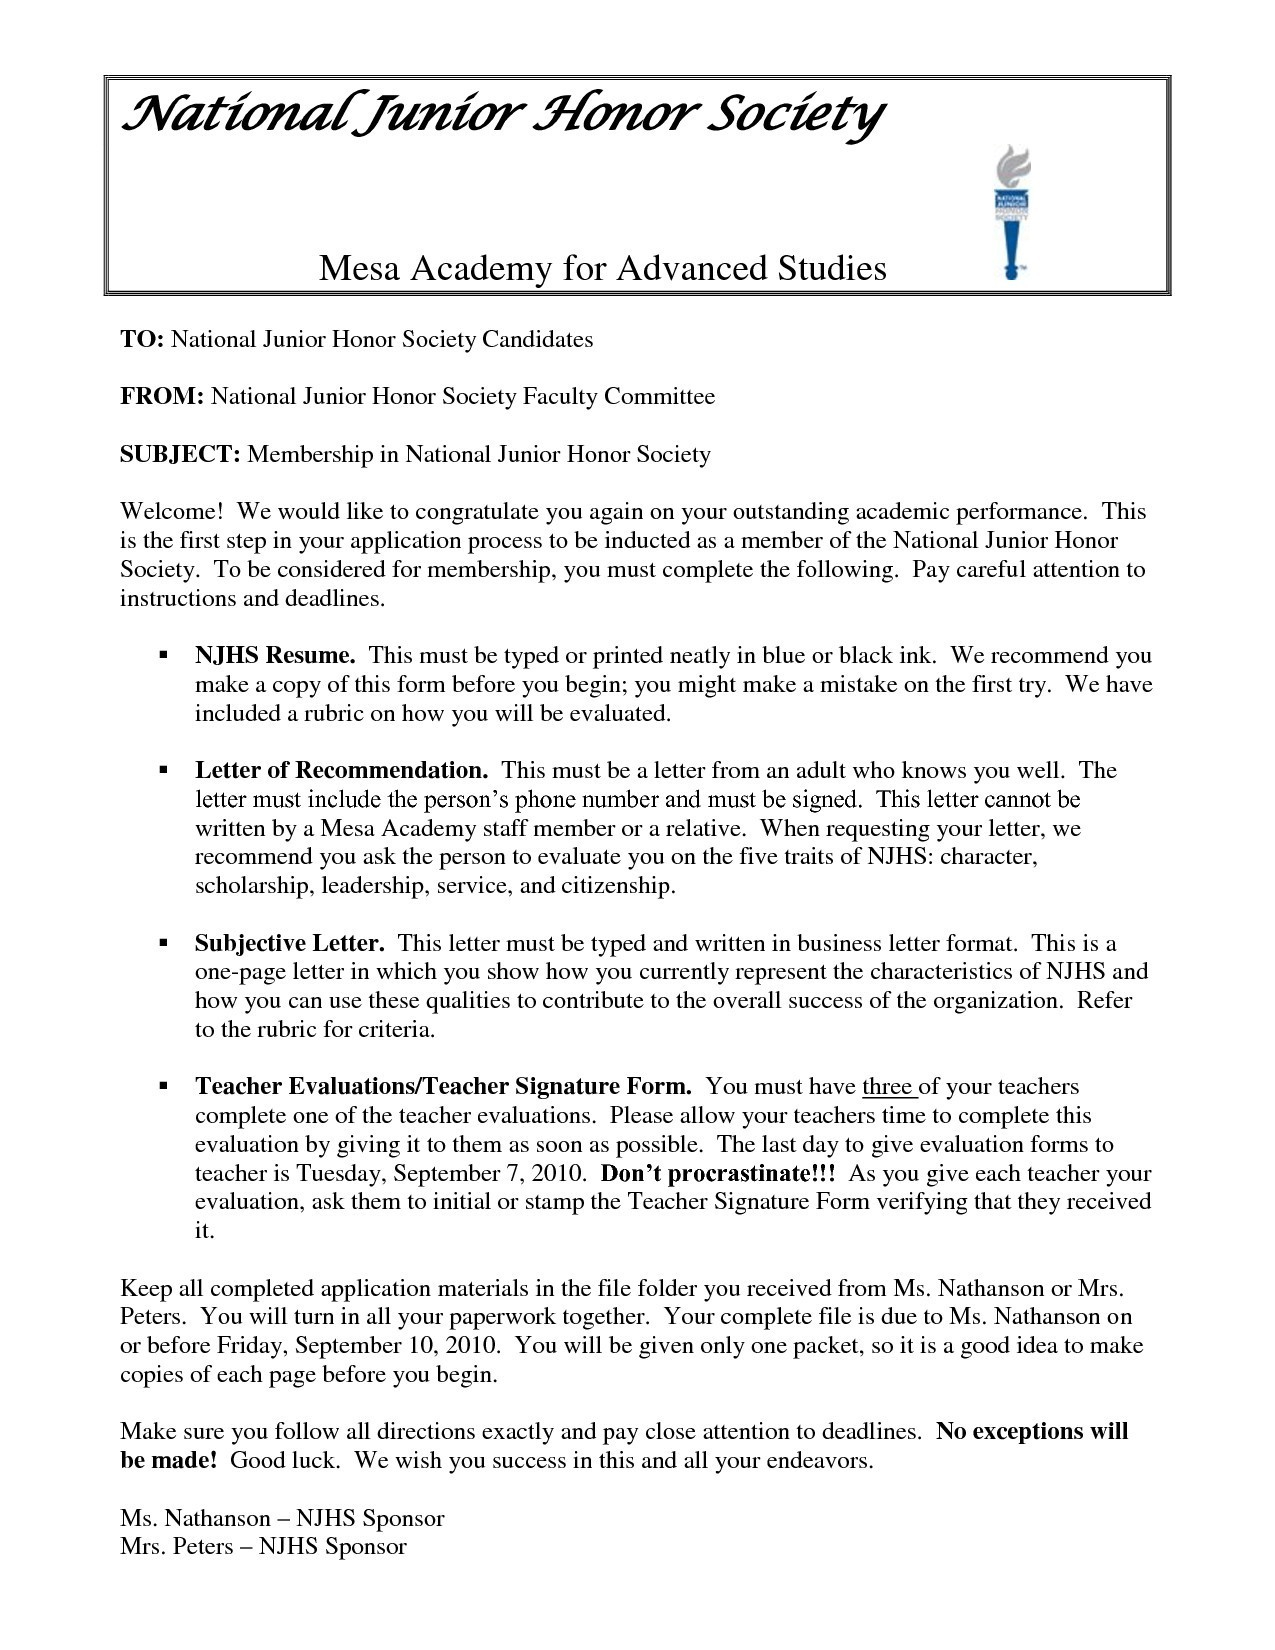 national junior honor society letter of recommendation template national junior honor society essay examples new